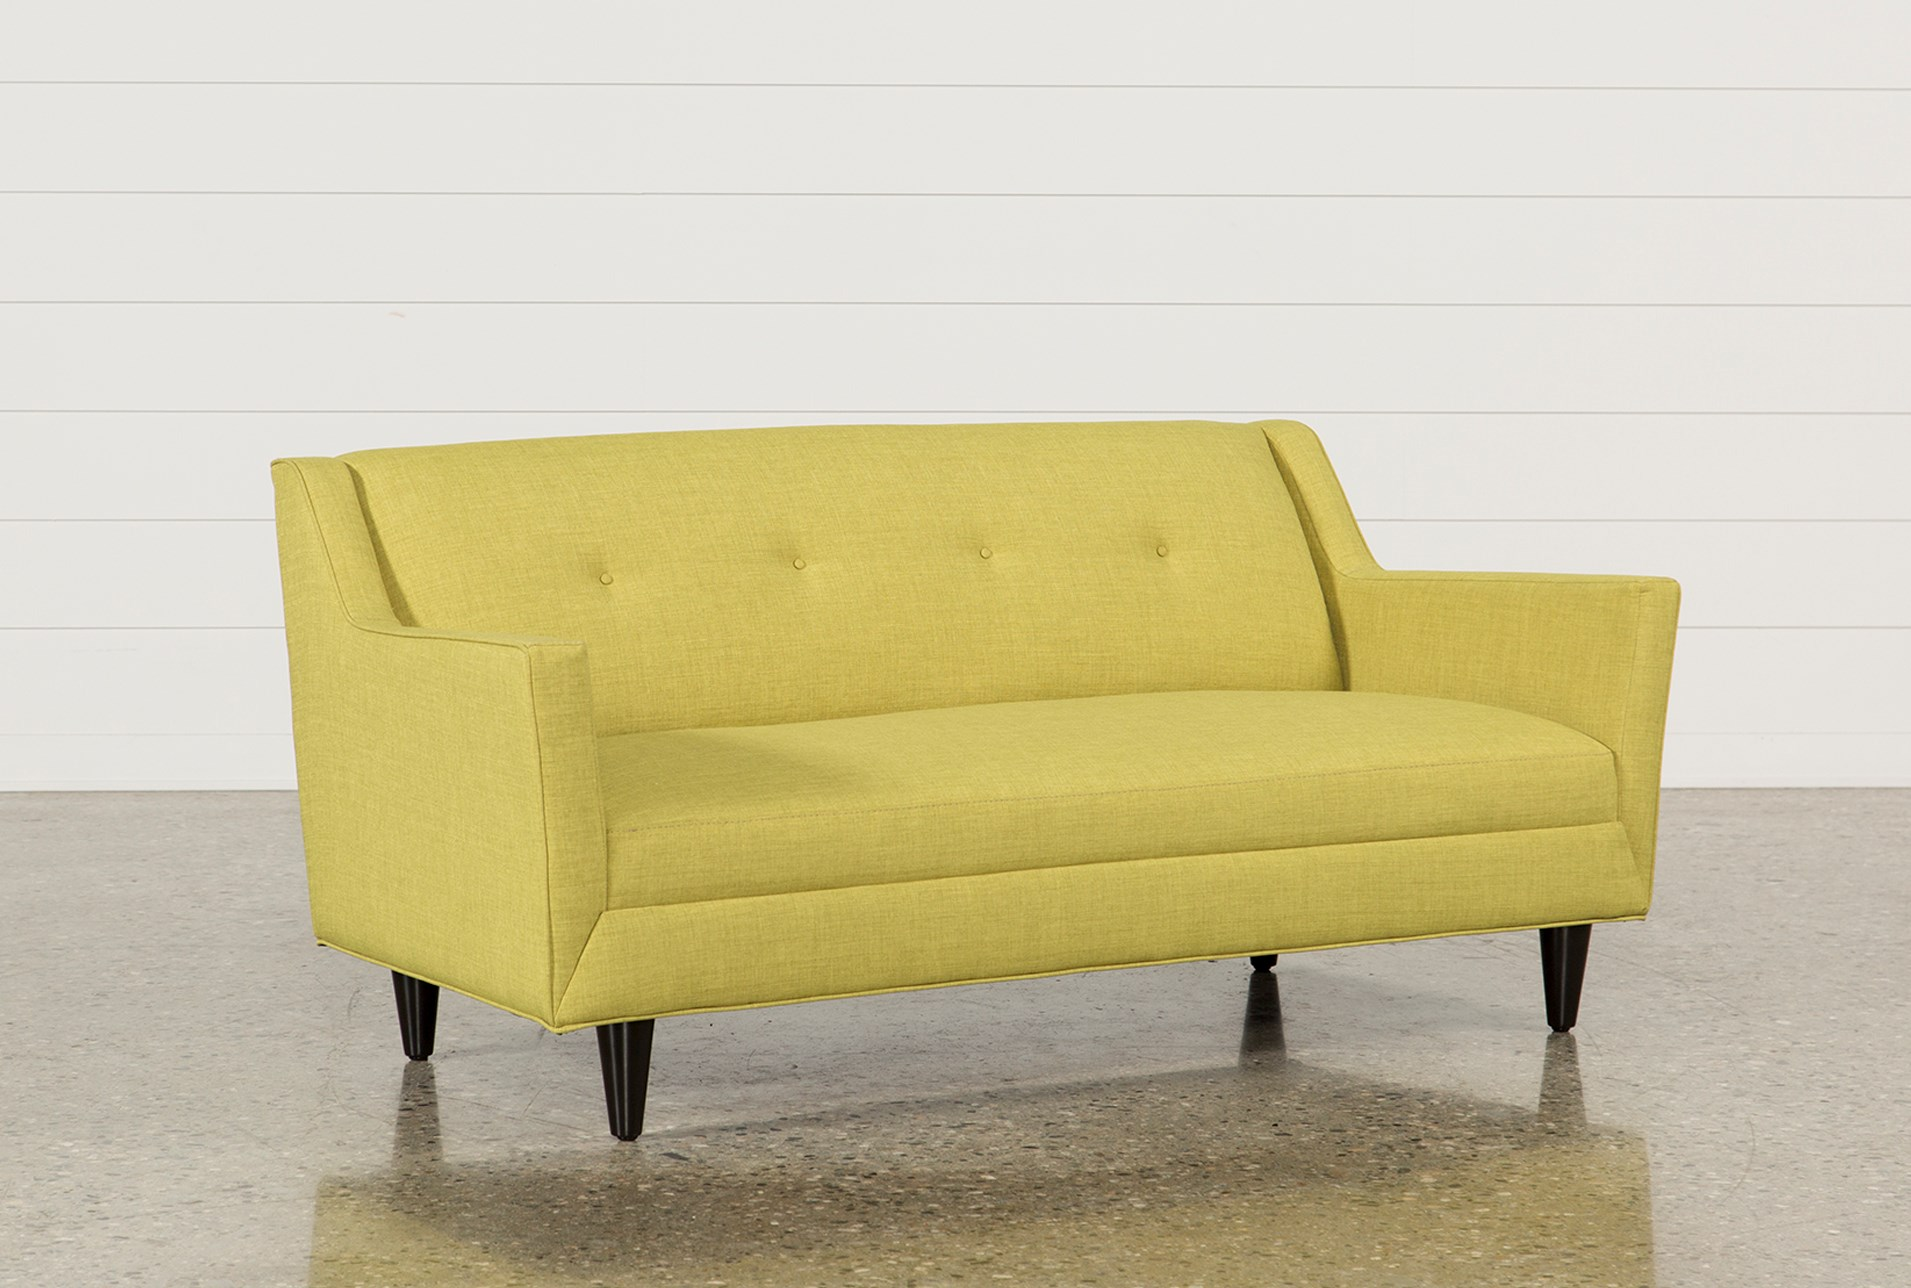 Gretchen Condo Sofa Qty 1 Has Been Successfully Added To Your Cart